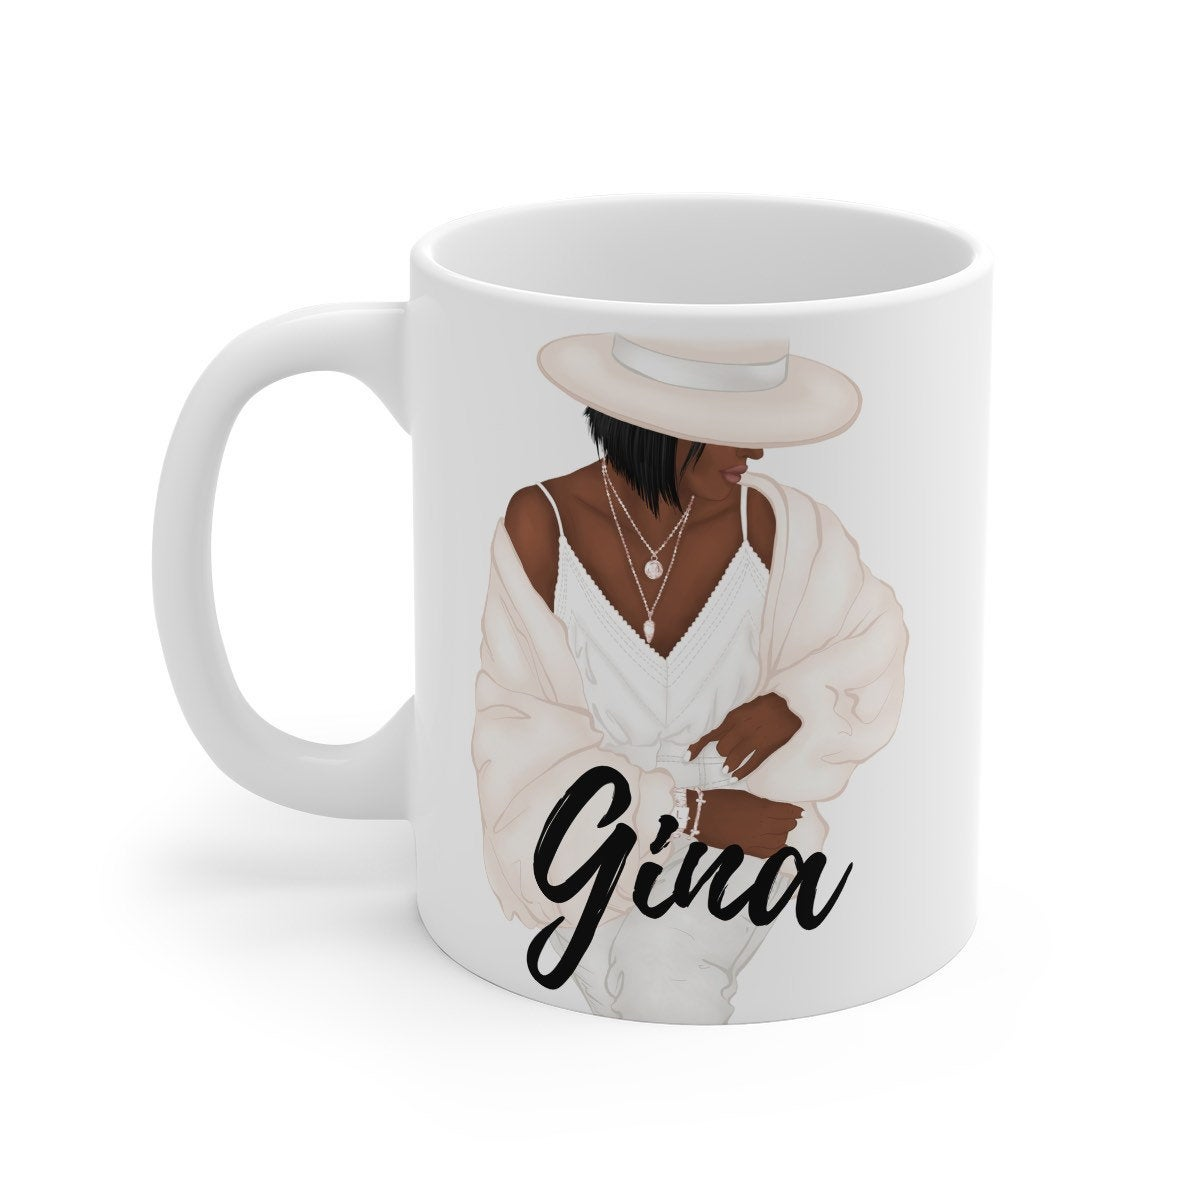 Black Woman Coffee Mug Customized With Name